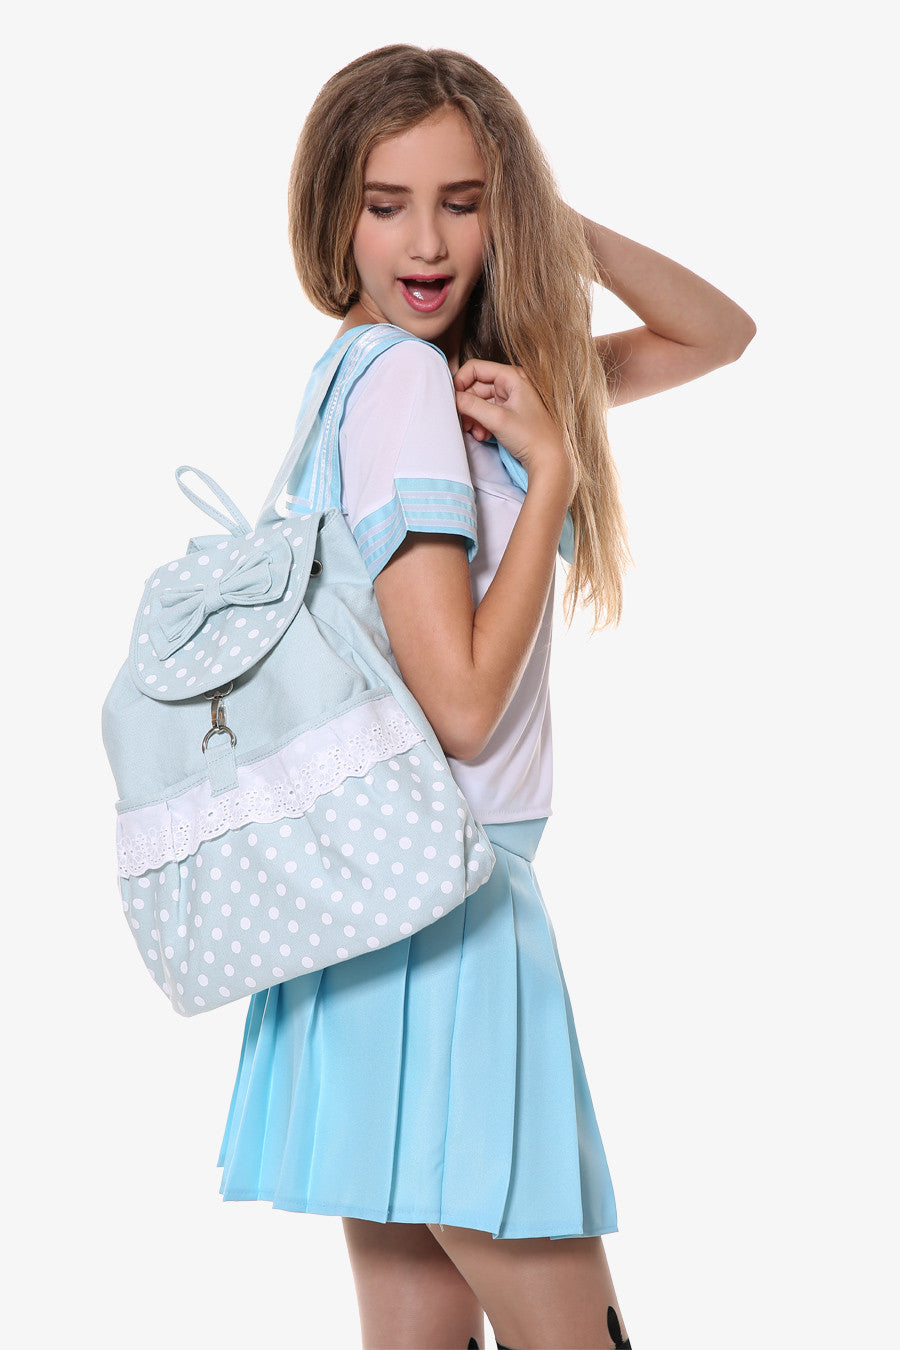 Blue Polka Dot Backpack